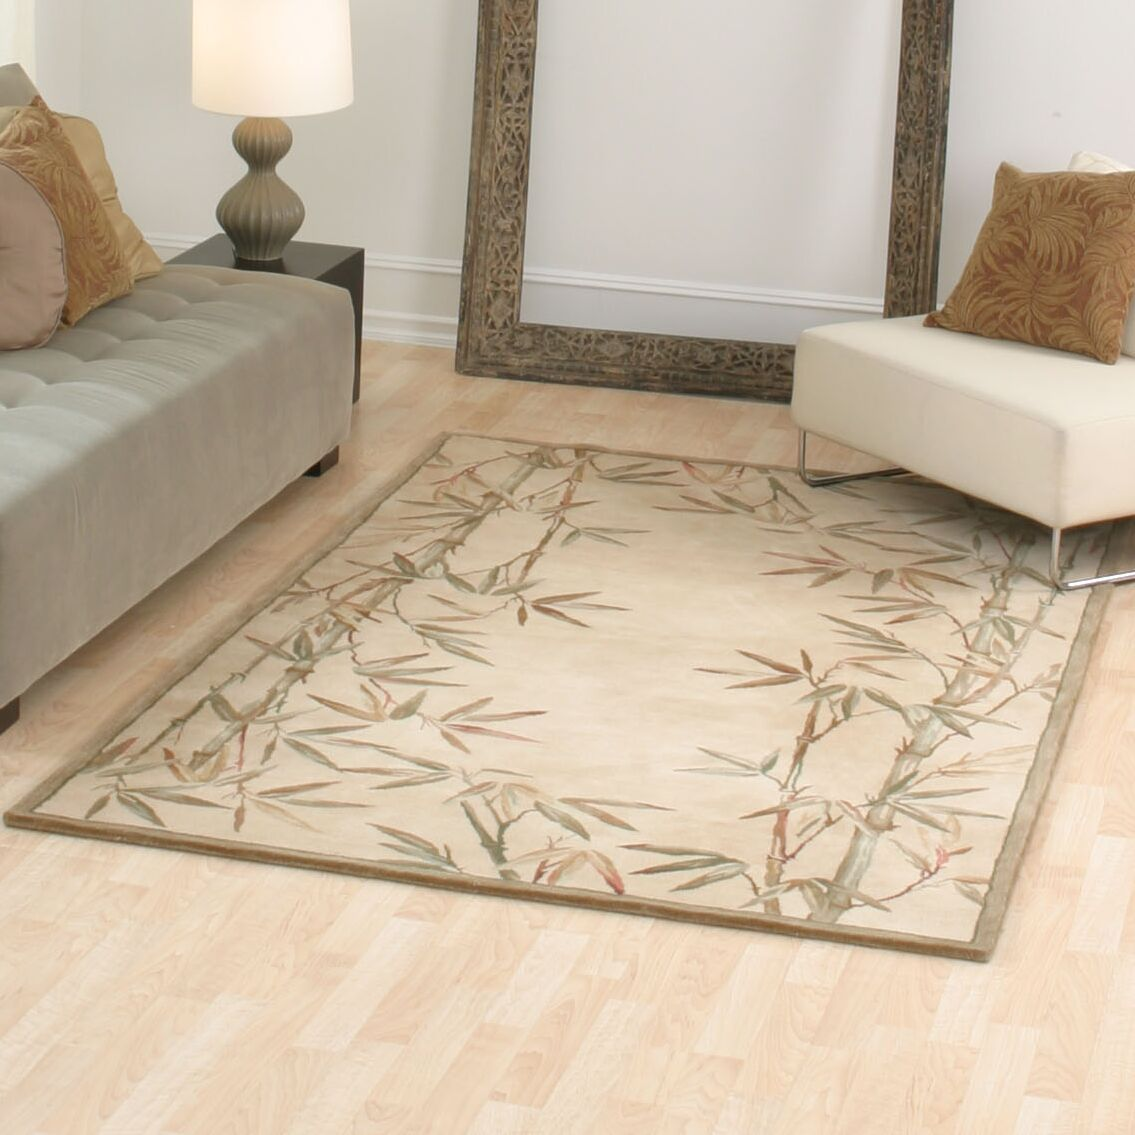 Chenai Ivory Bamboo Border Area Rug Rug Size: Rectangle 3'6